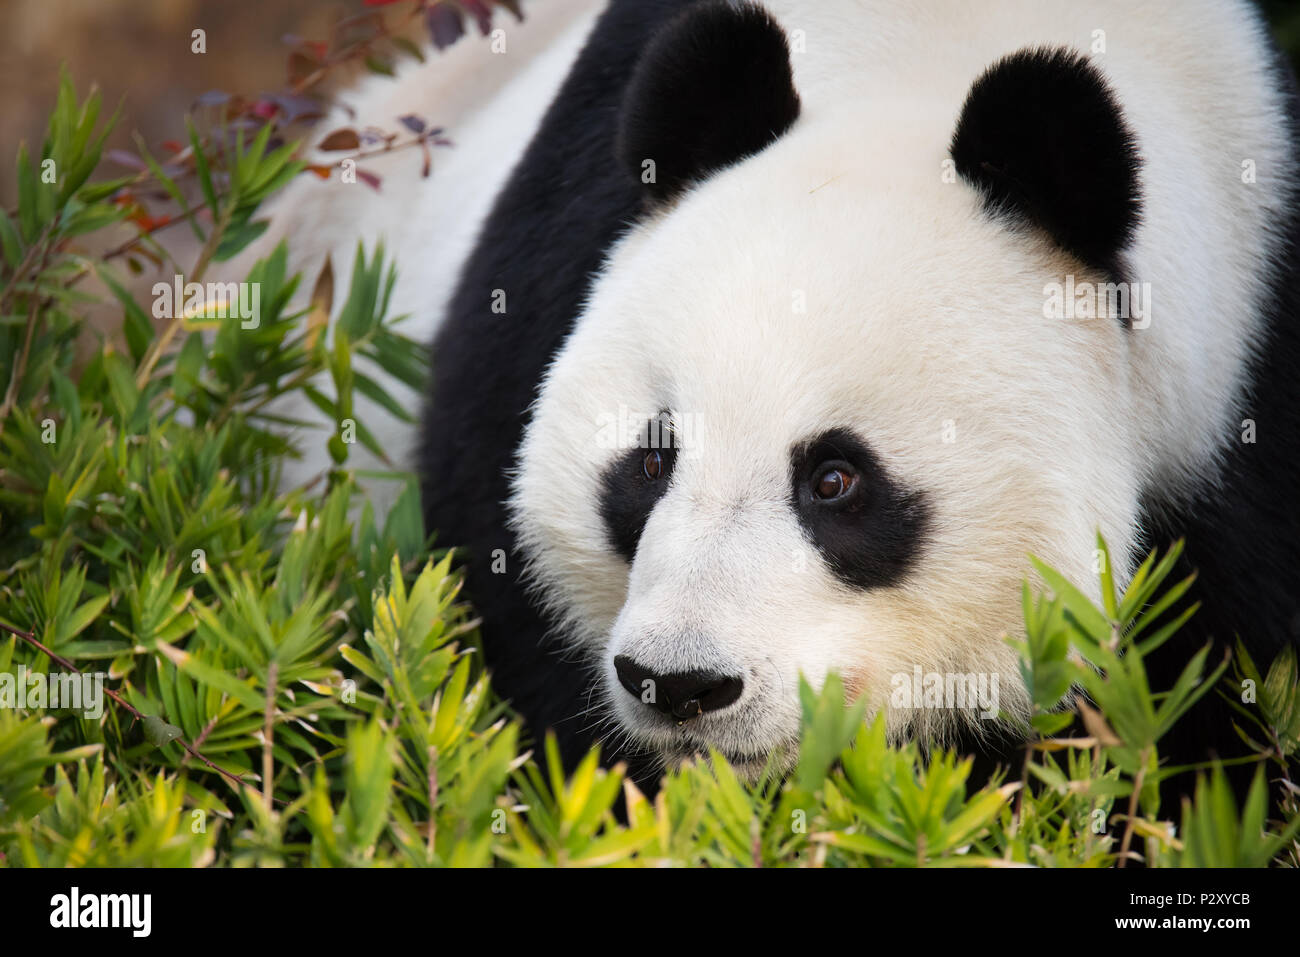 A Giant Panda at a zoo in South Australia, which is one of only two pandas on Australia.  Giant Pandas are vulnerable to extinction in the wild. Stock Photo